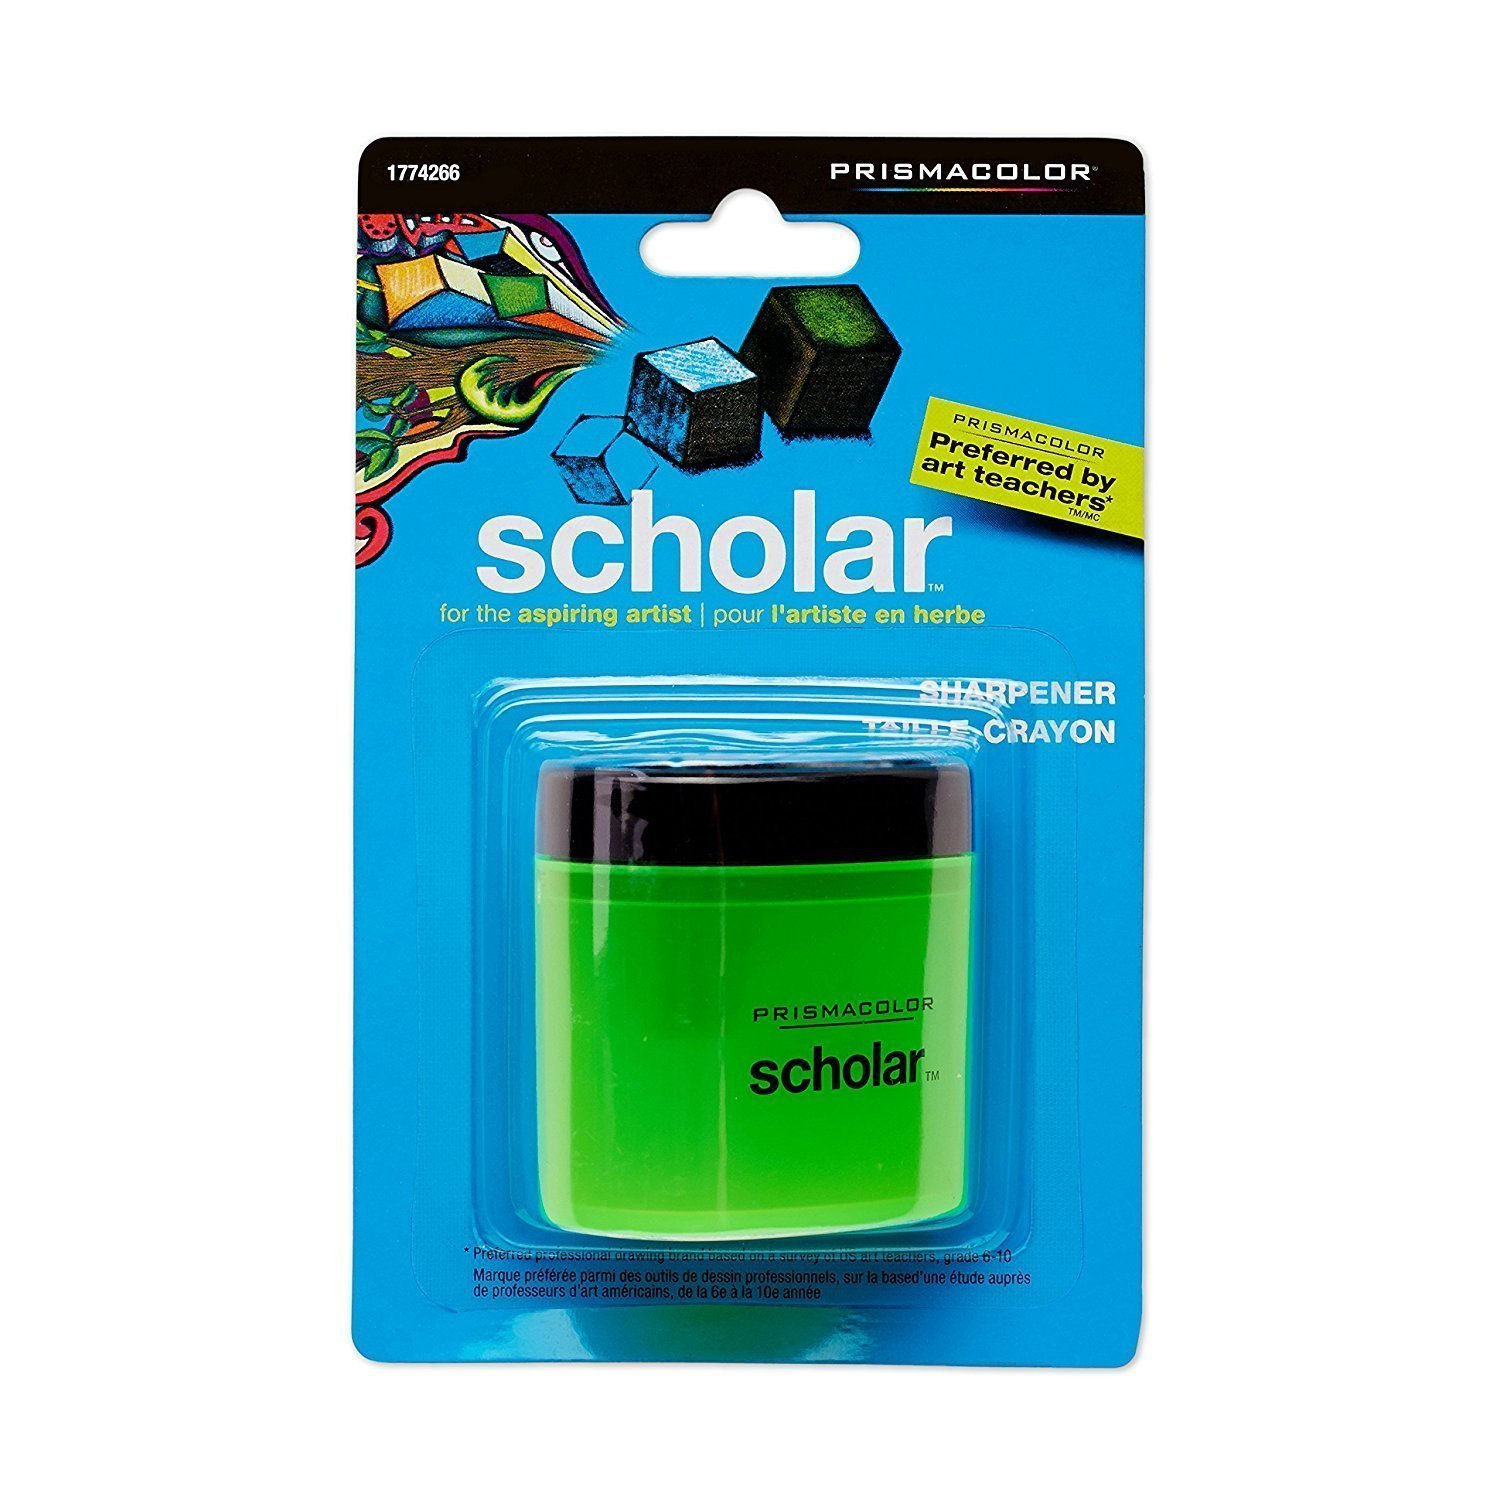 Prismacolor Scholar Pencil Sharpener (1774266) Sanford